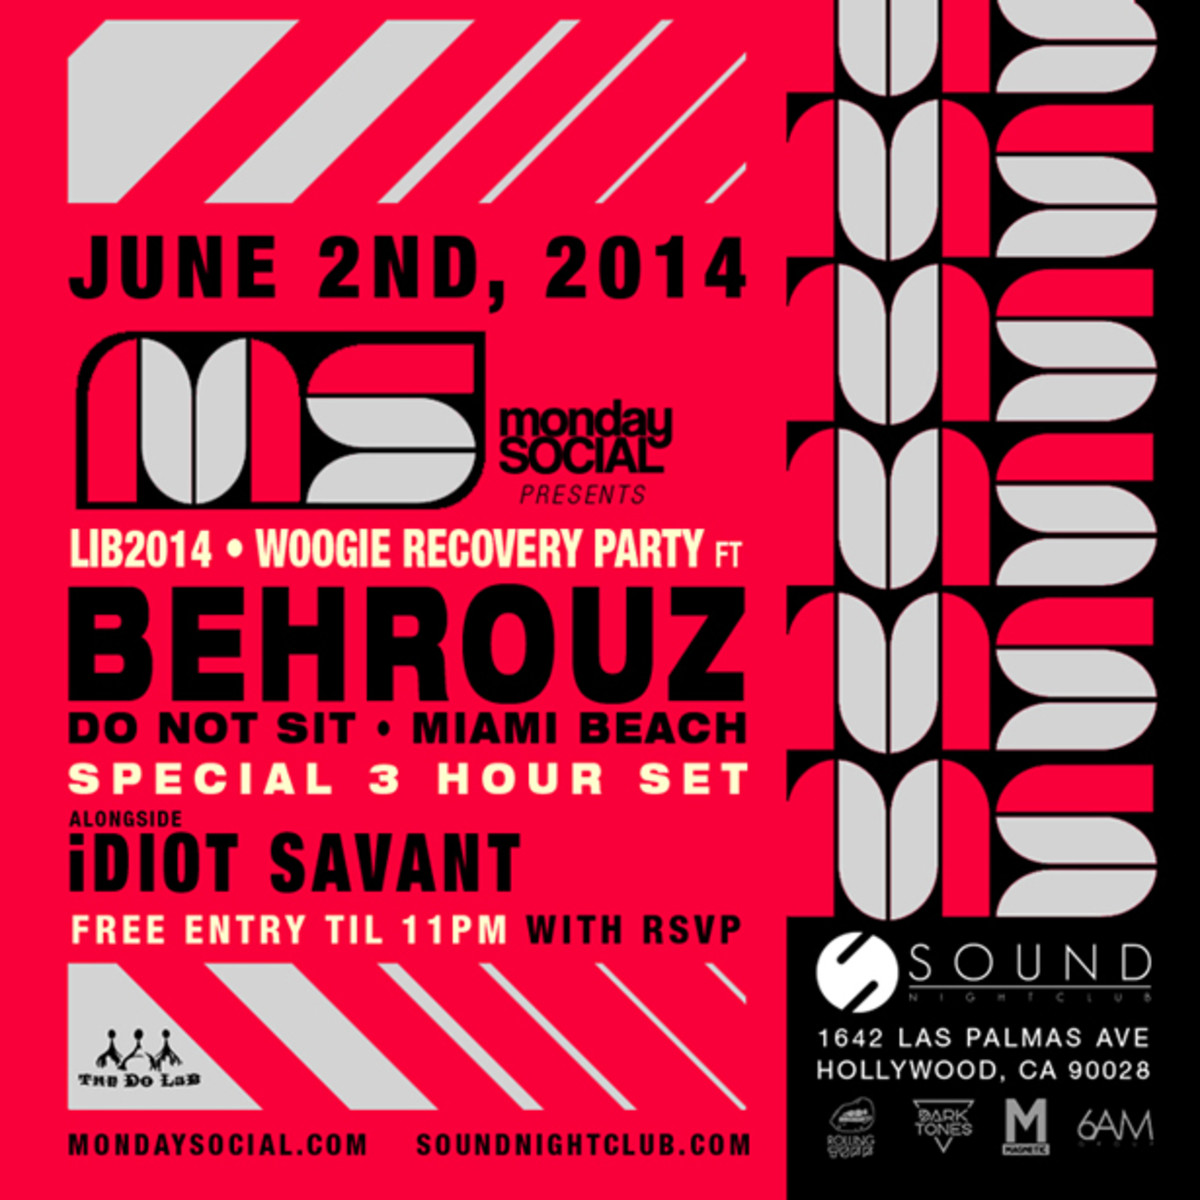 Monday Social June 2nd, 2014 - Behrouz & iDIOT SAVANT